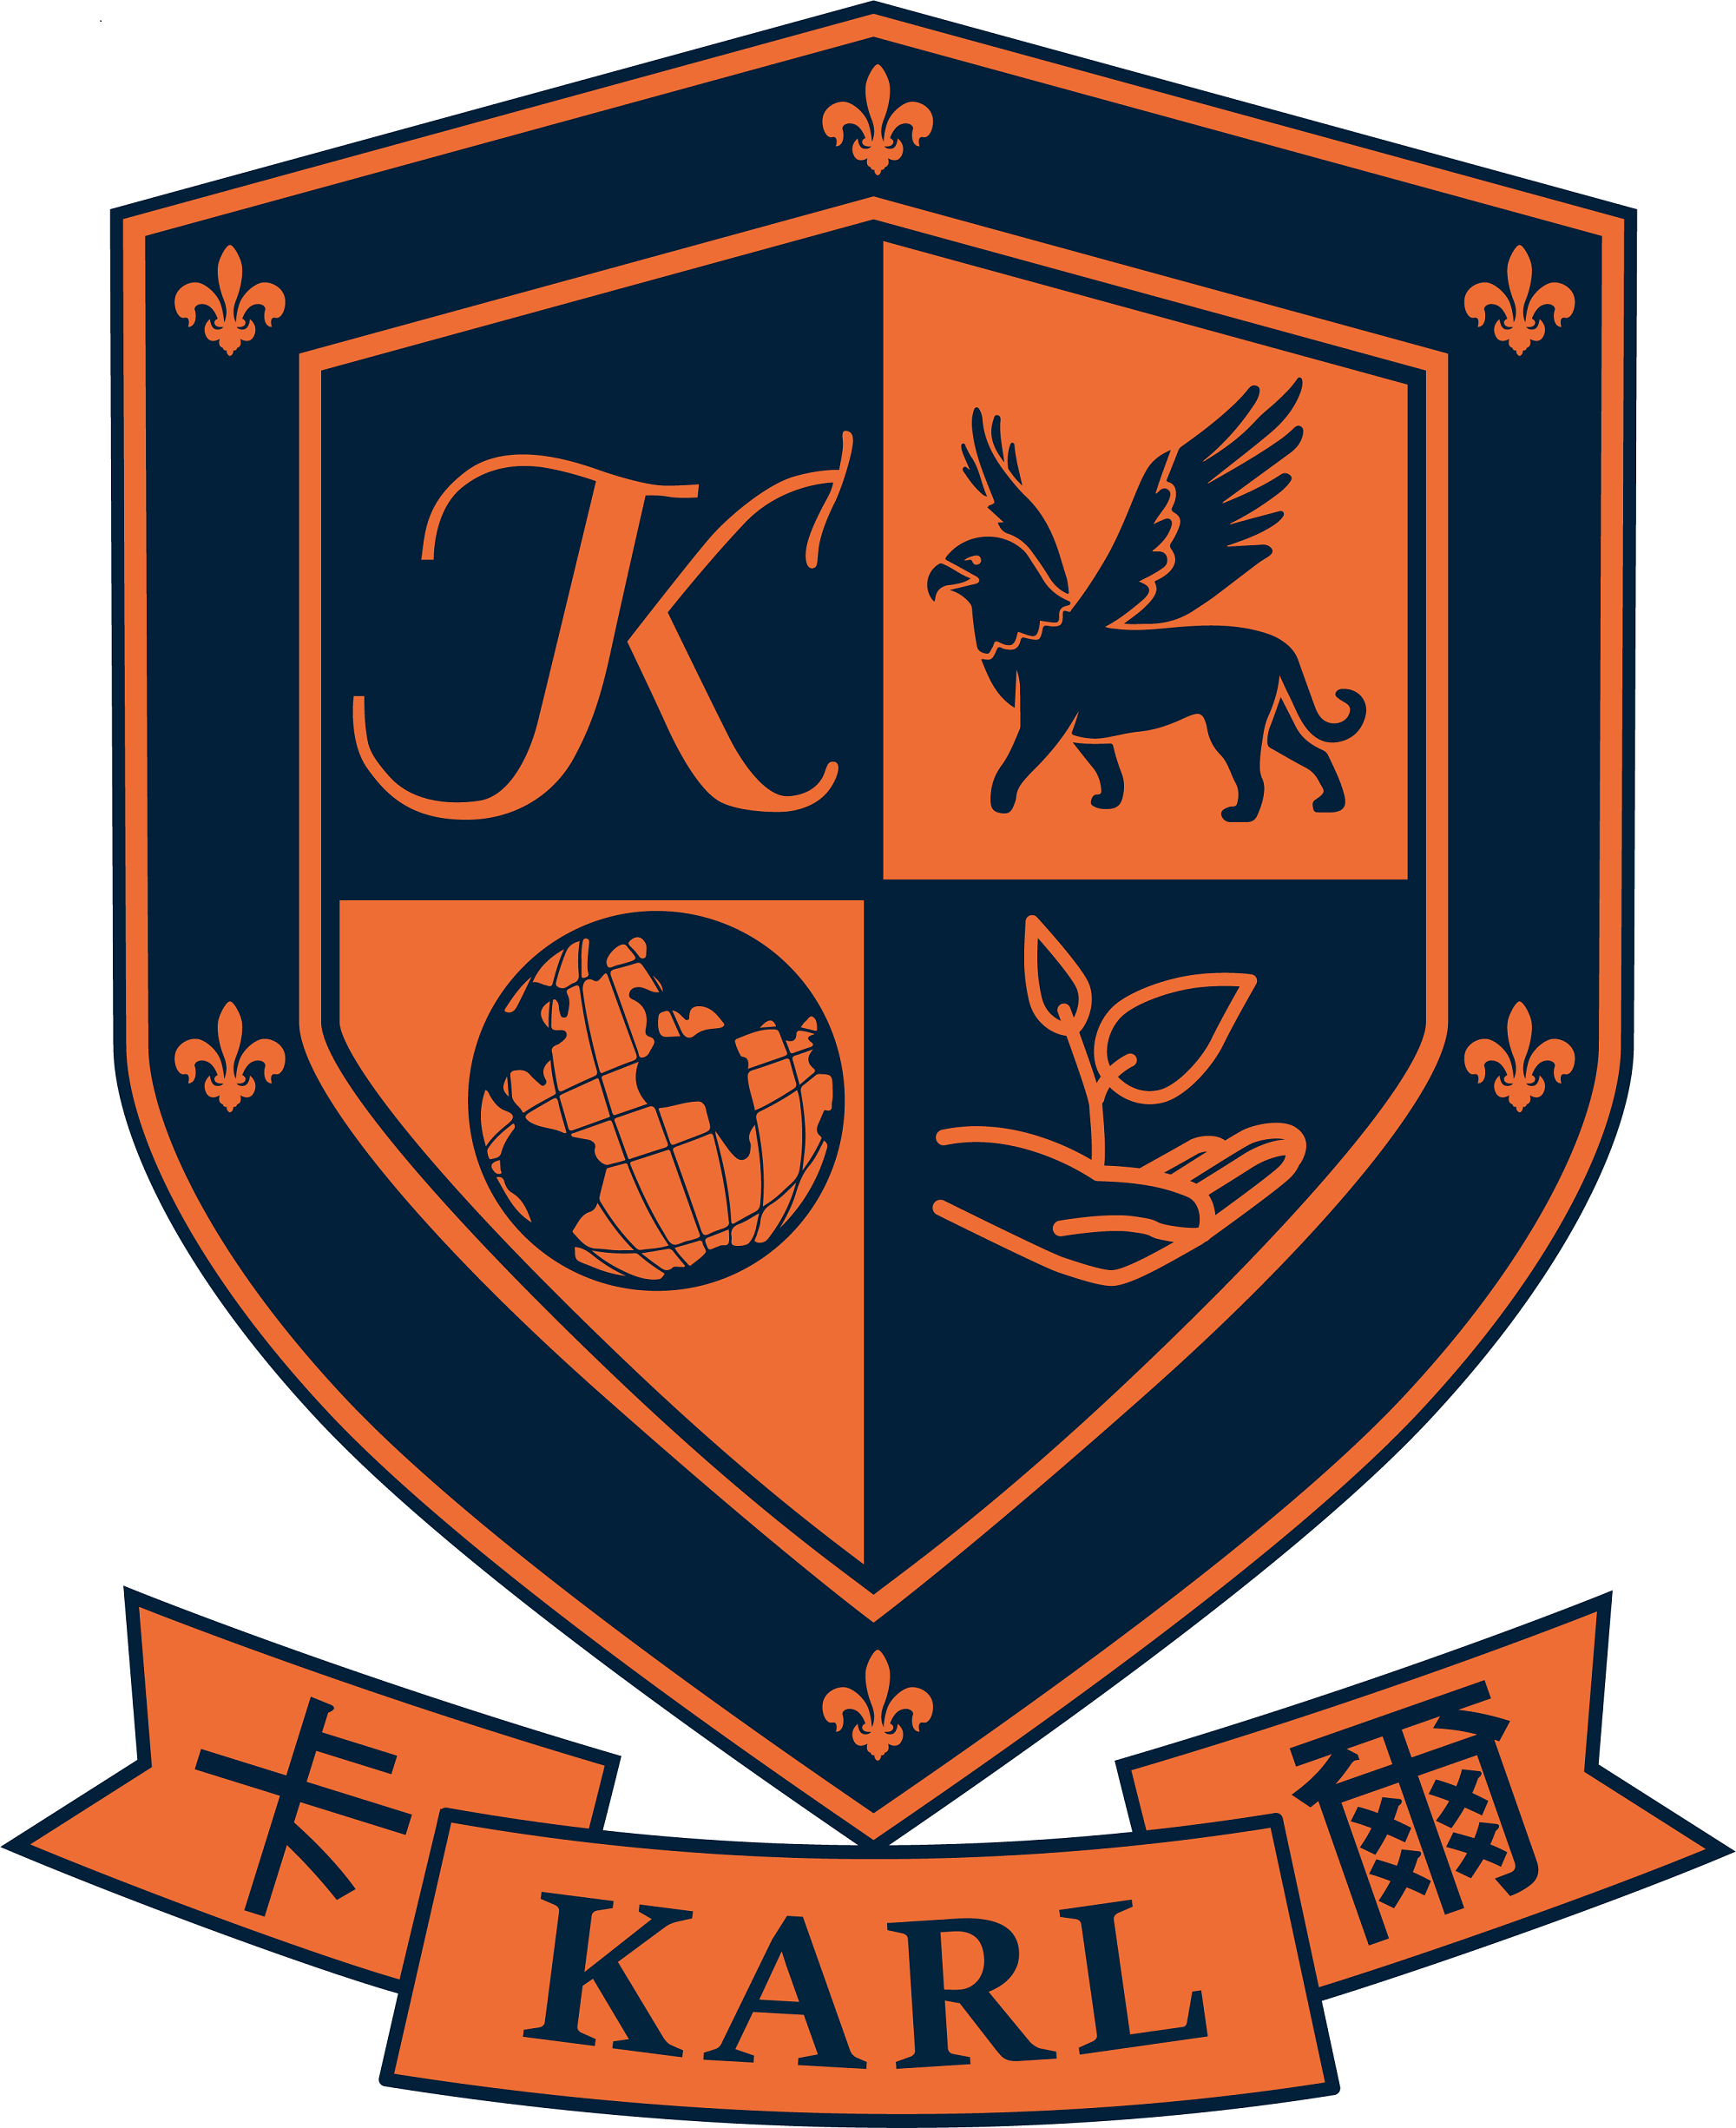 Teaching English and Living in Taiwan Jobs Available 教學工作, Karl International Experimental Education Institution Karl International Experimental Education - English, Math, and Physics image